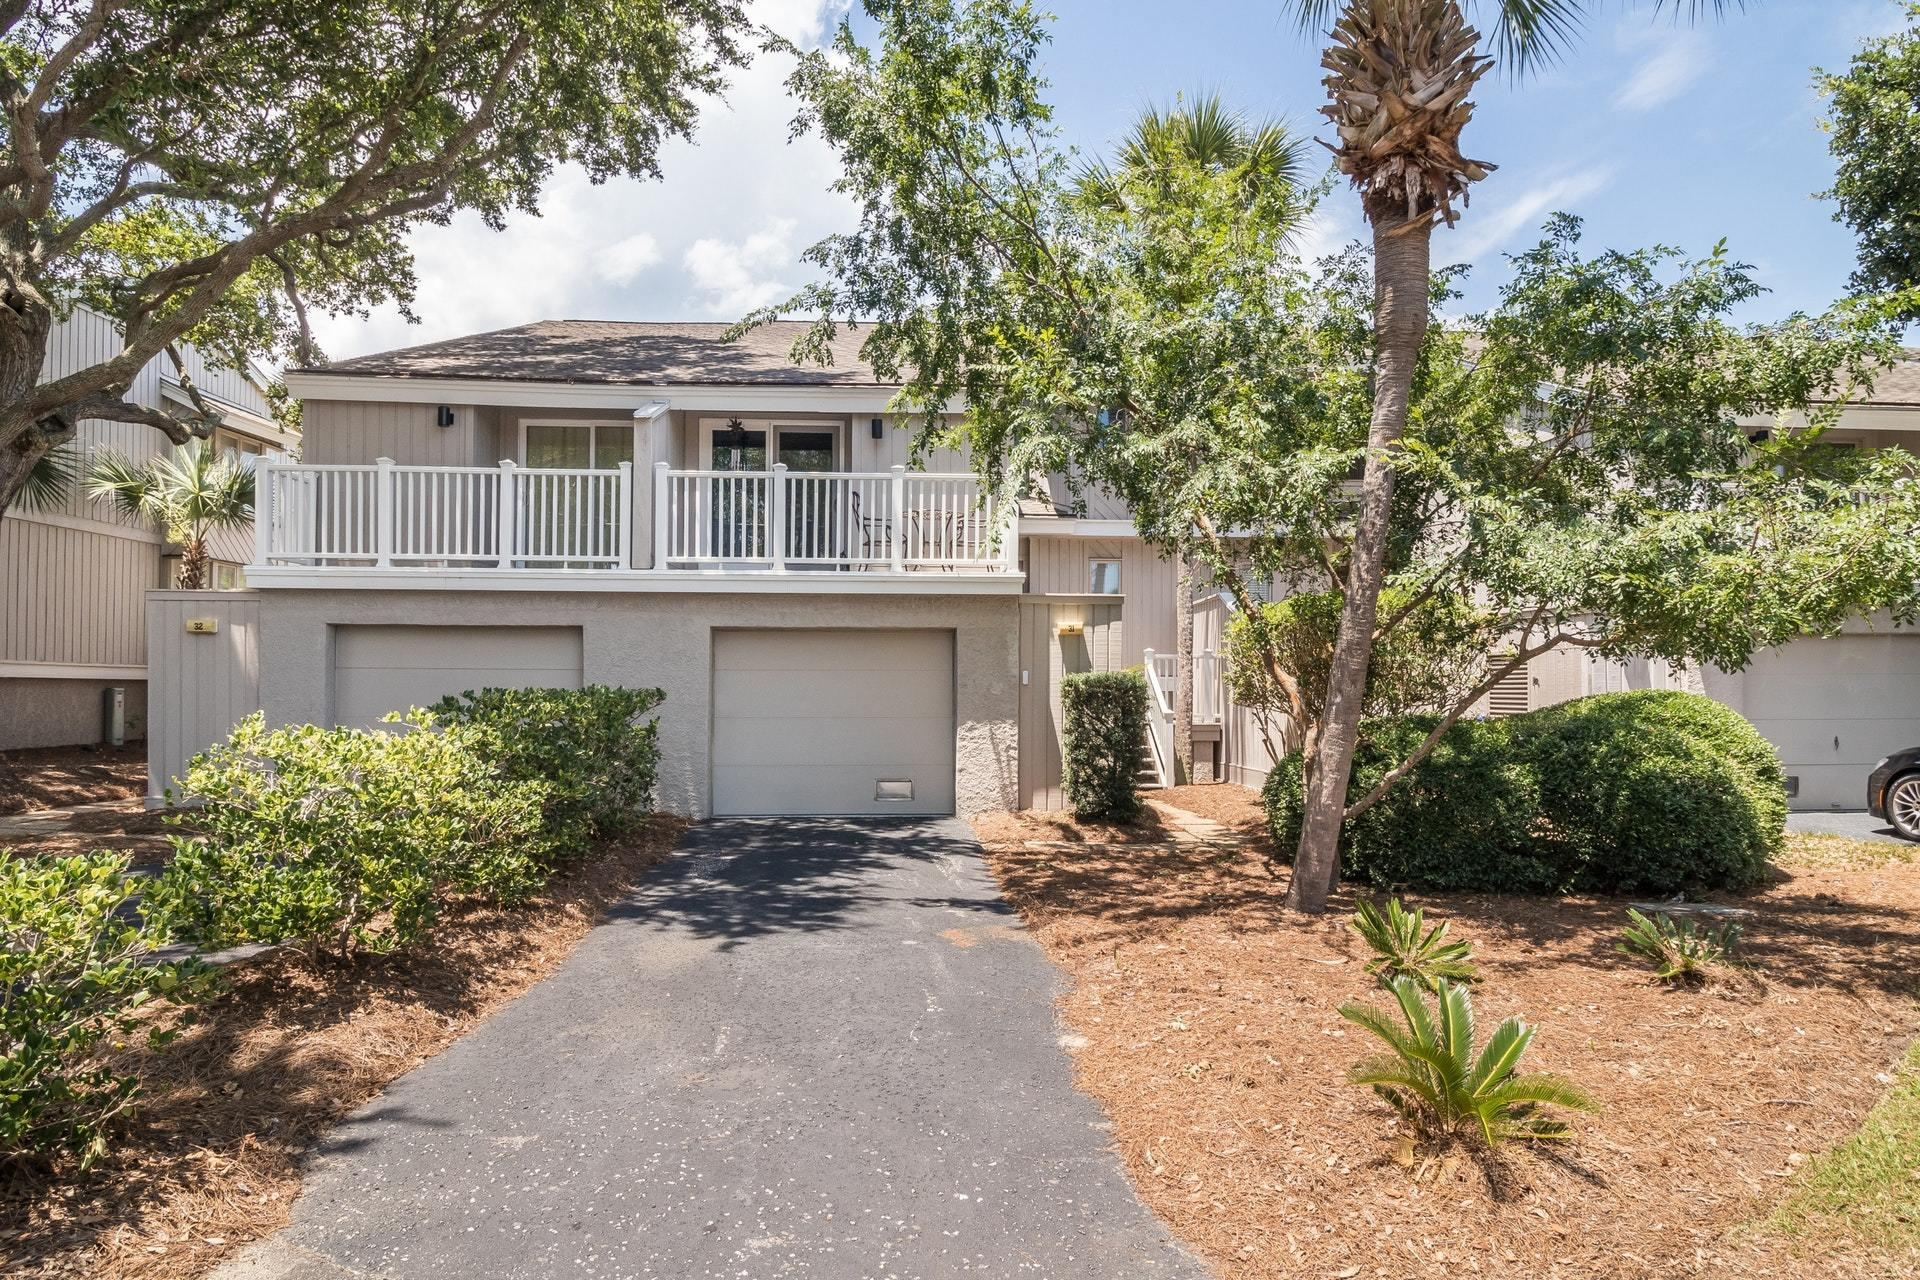 31 Racquet Club Isle Of Palms, SC 29451